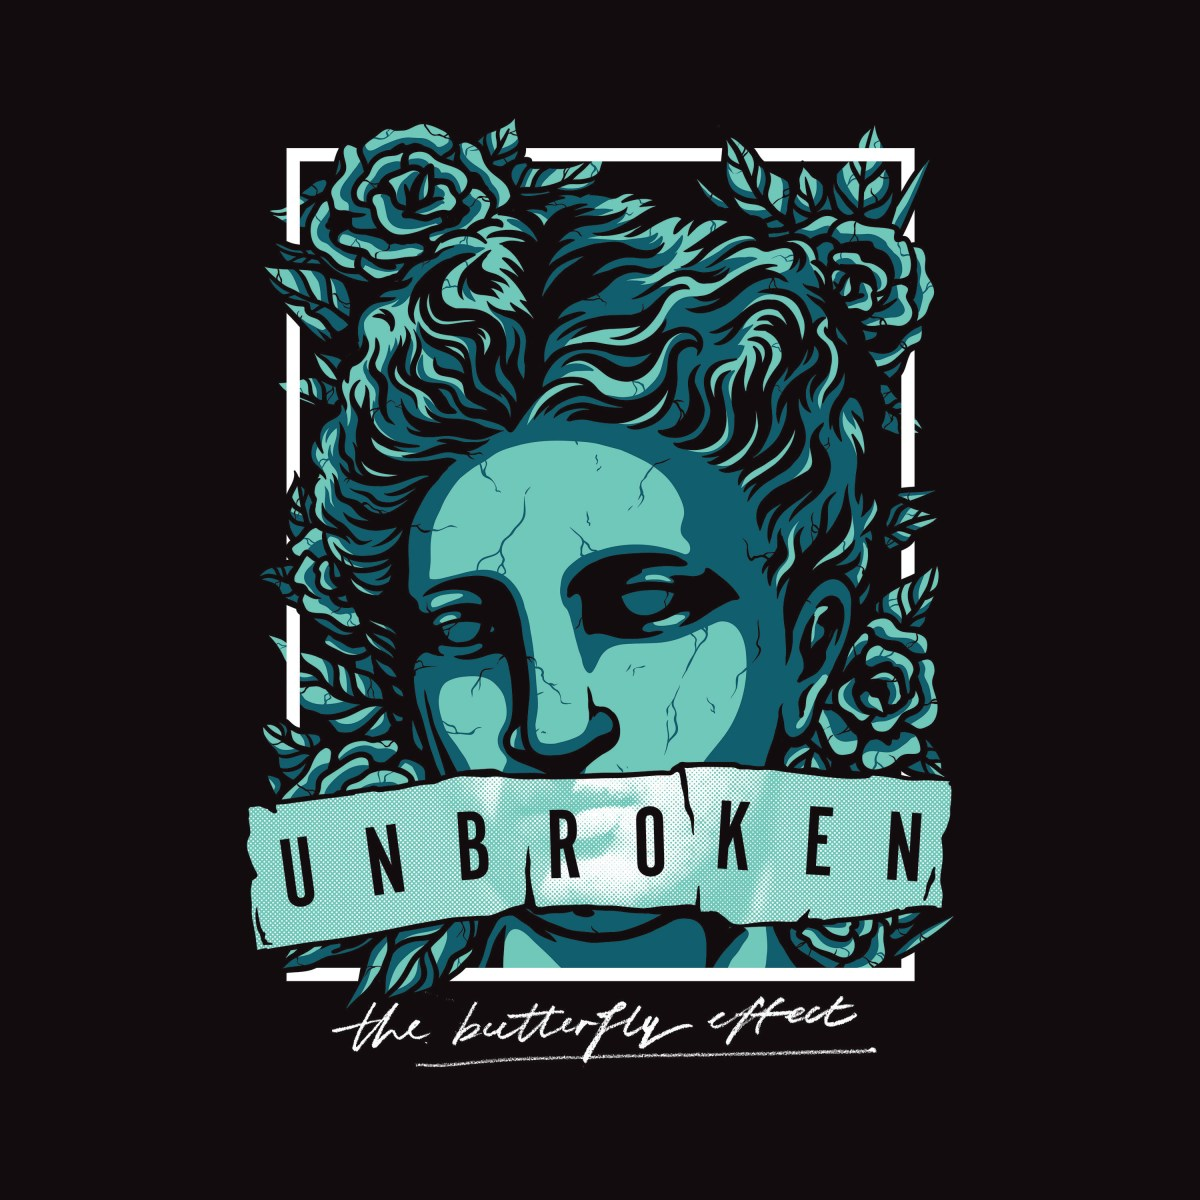 THE BUTTERFLY EFFECT DROP VIDEO CLIP FOR FIRST NEW MUSICAL OFFERING IN OVER A DECADE, 'UNBROKEN' | YOUR CULTURE HUB